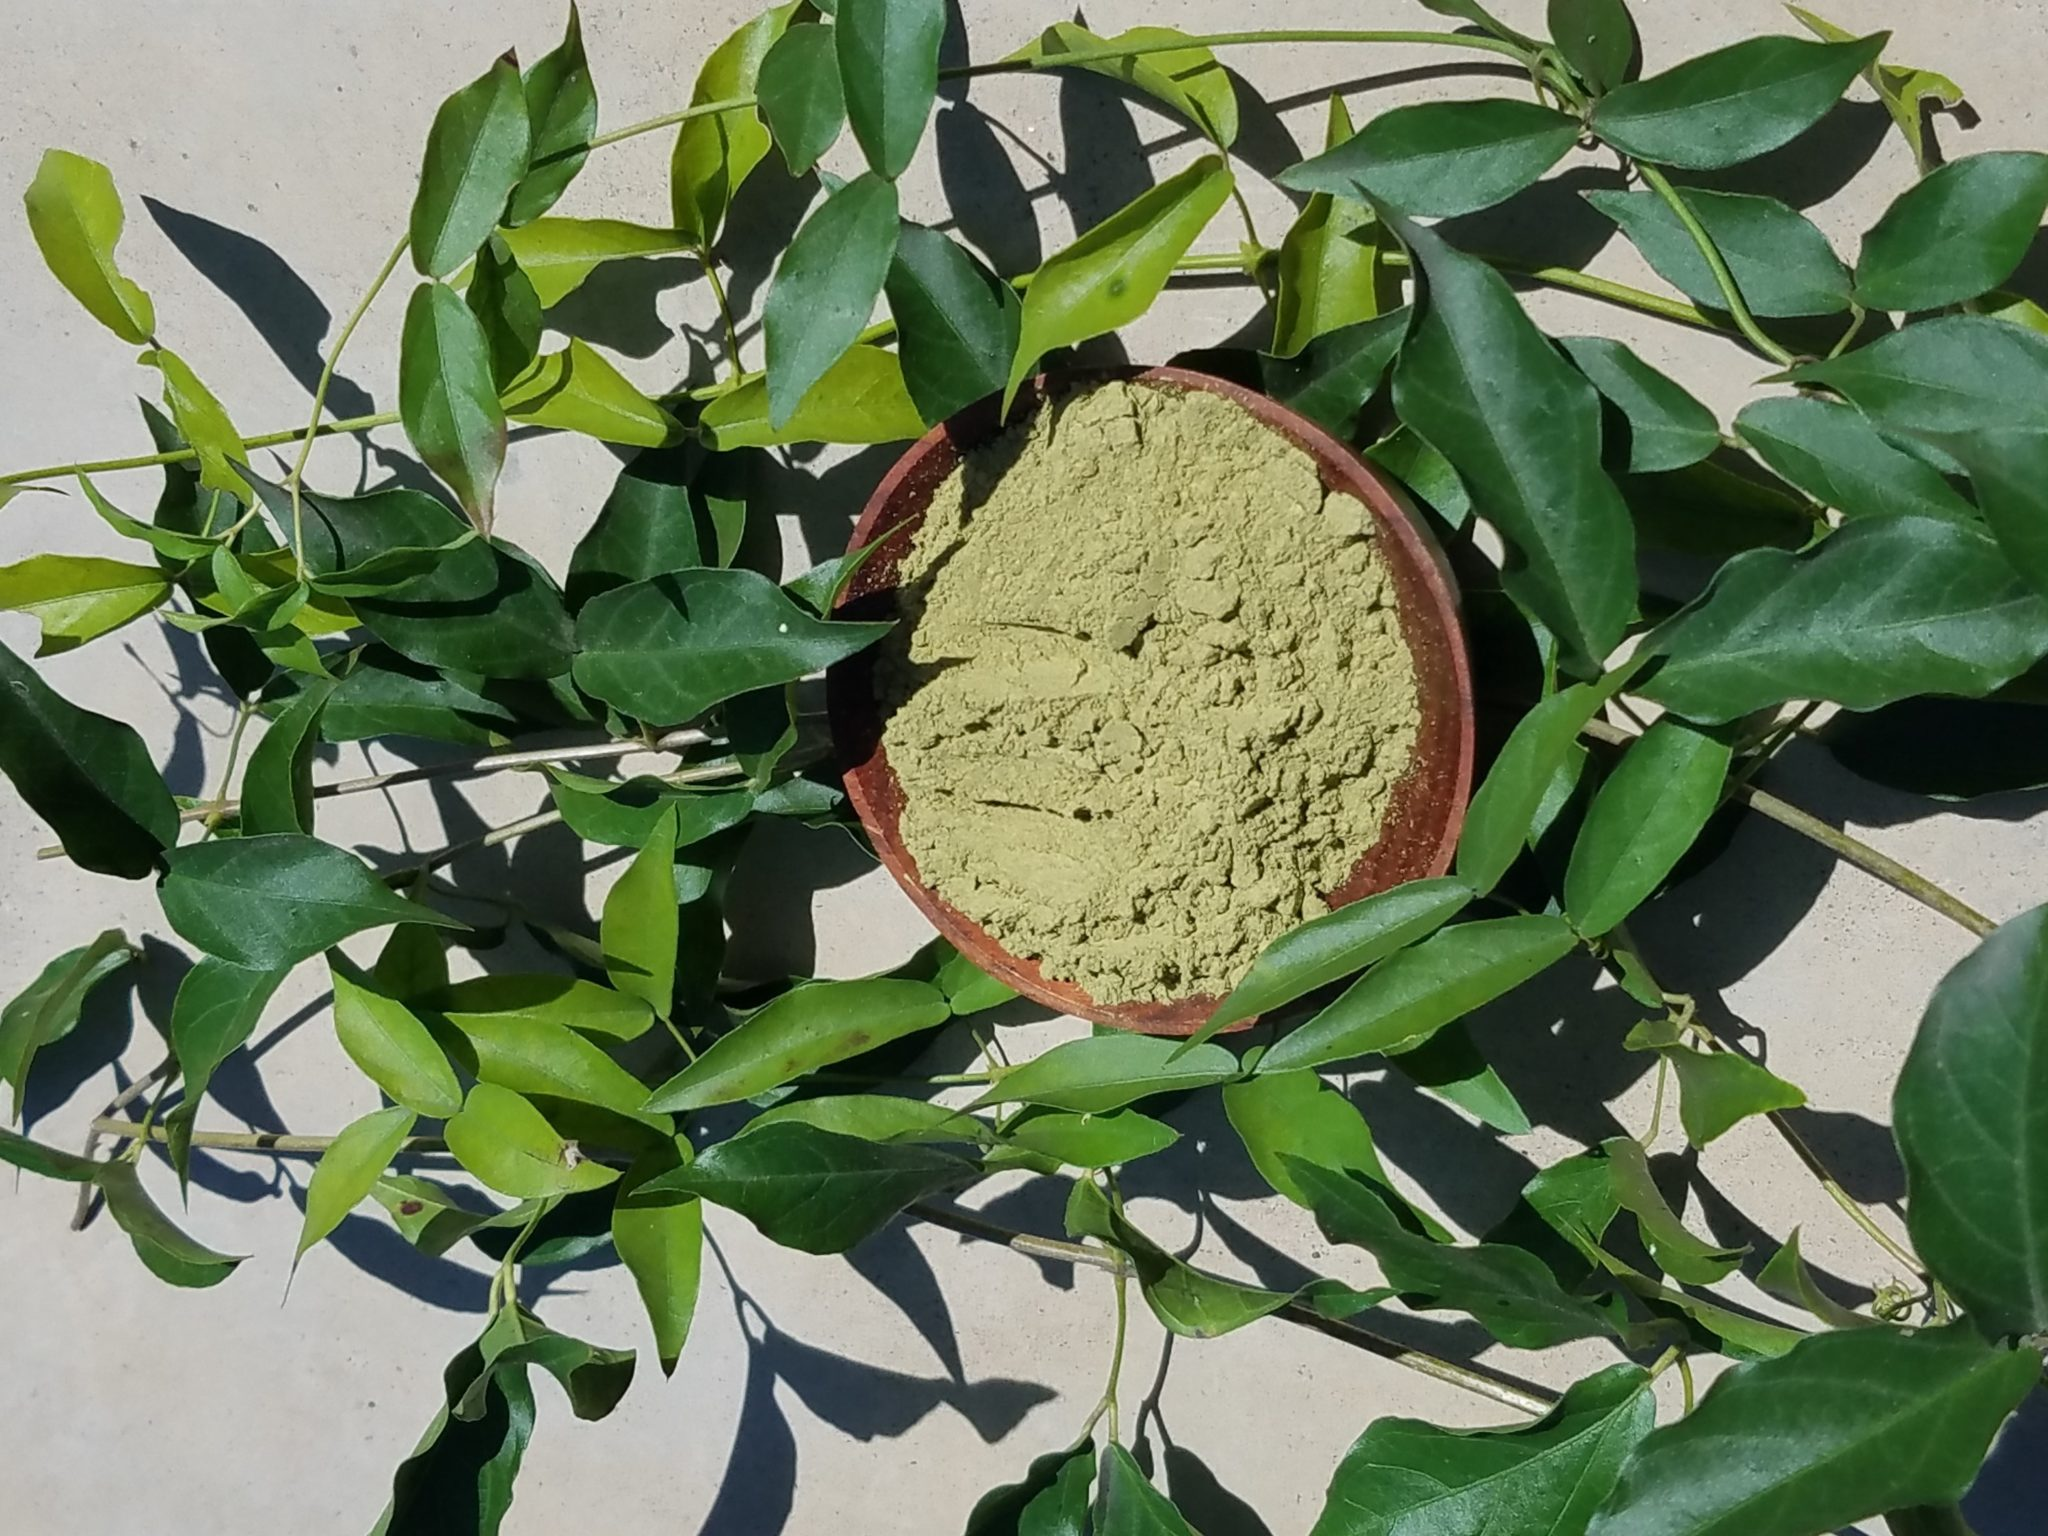 The Benefits Of Kratom: Pain Relief, Energy, Anti-Depressant, Anti-Stress, Anti-Anxiety, Anti-Fatigue, Anti-Insomnia, And Anti-Drug Addiction